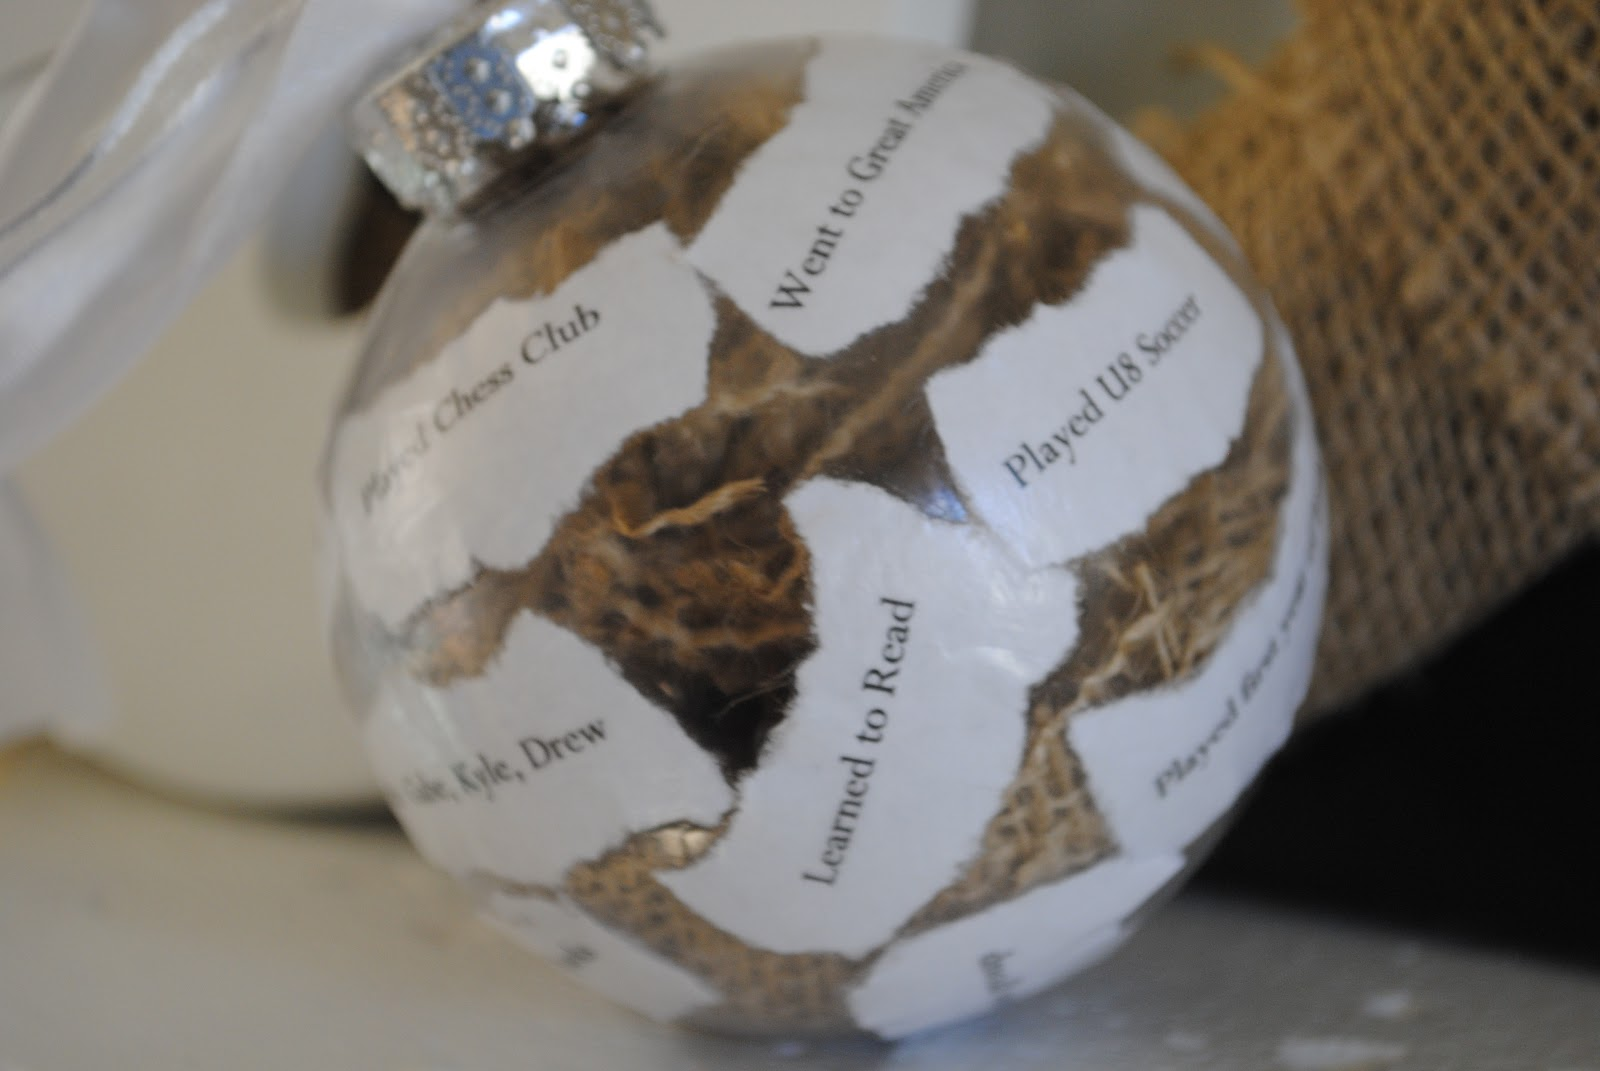 In memory of ornaments - I Have Seen Those Pretty Ornaments On Pinterest With The Curled Pieces Of An Invitation Or Birth Announcement In A Clear Glass Christmas Ornament